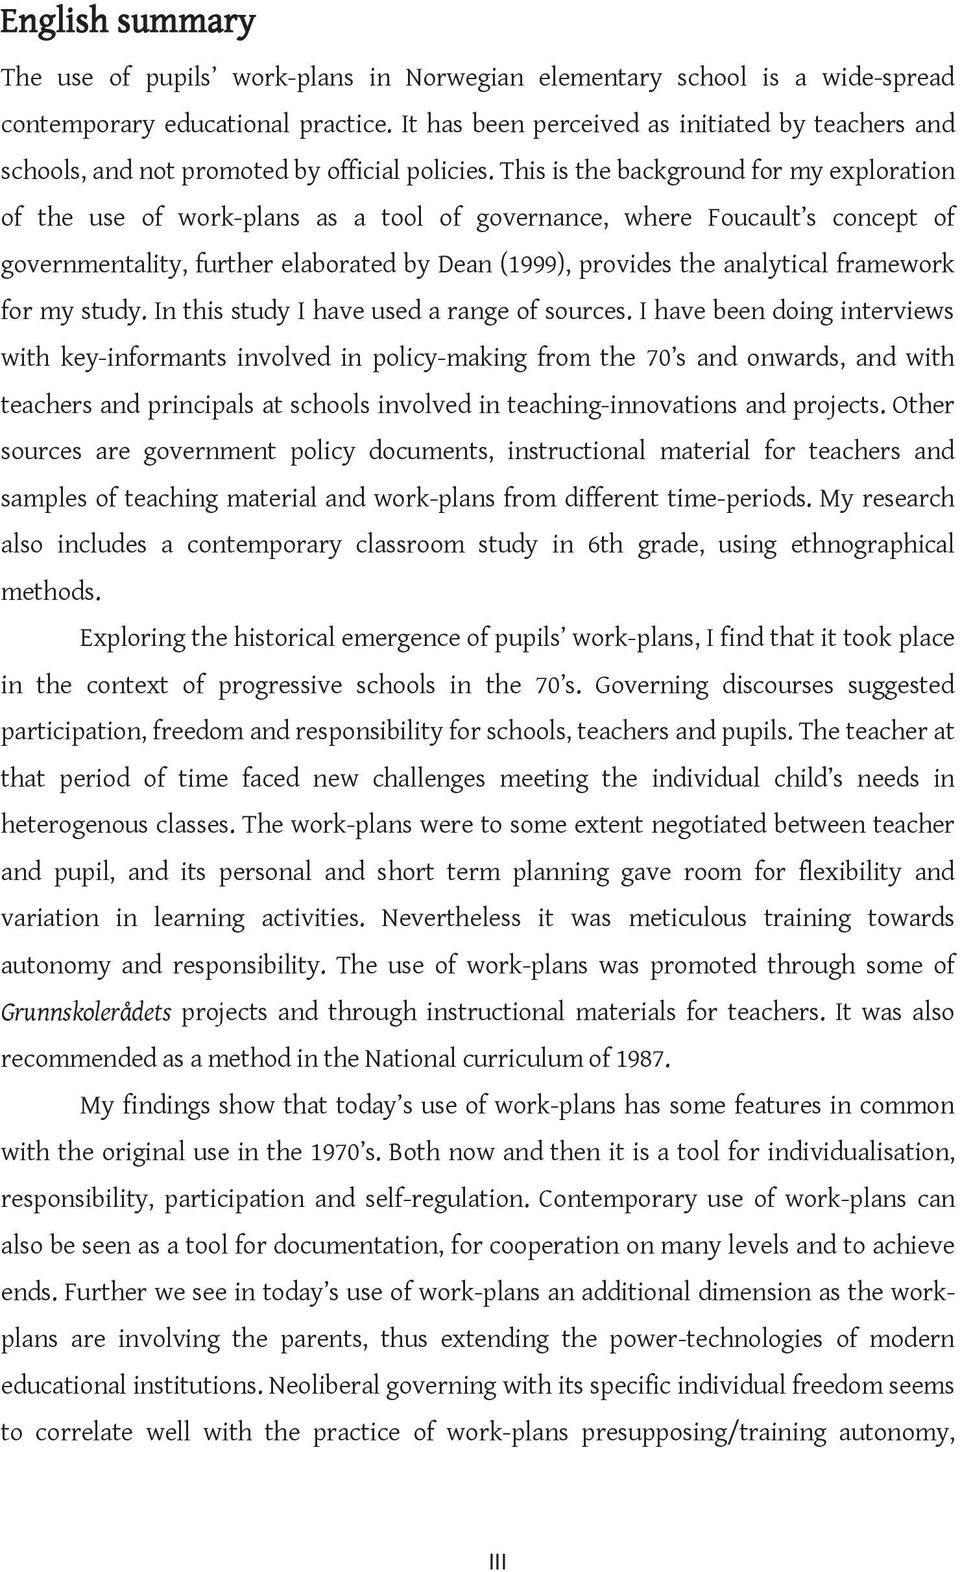 This is the background for my exploration of the use of work-plans as a tool of governance, where Foucault s concept of governmentality, further elaborated by Dean (1999), provides the analytical